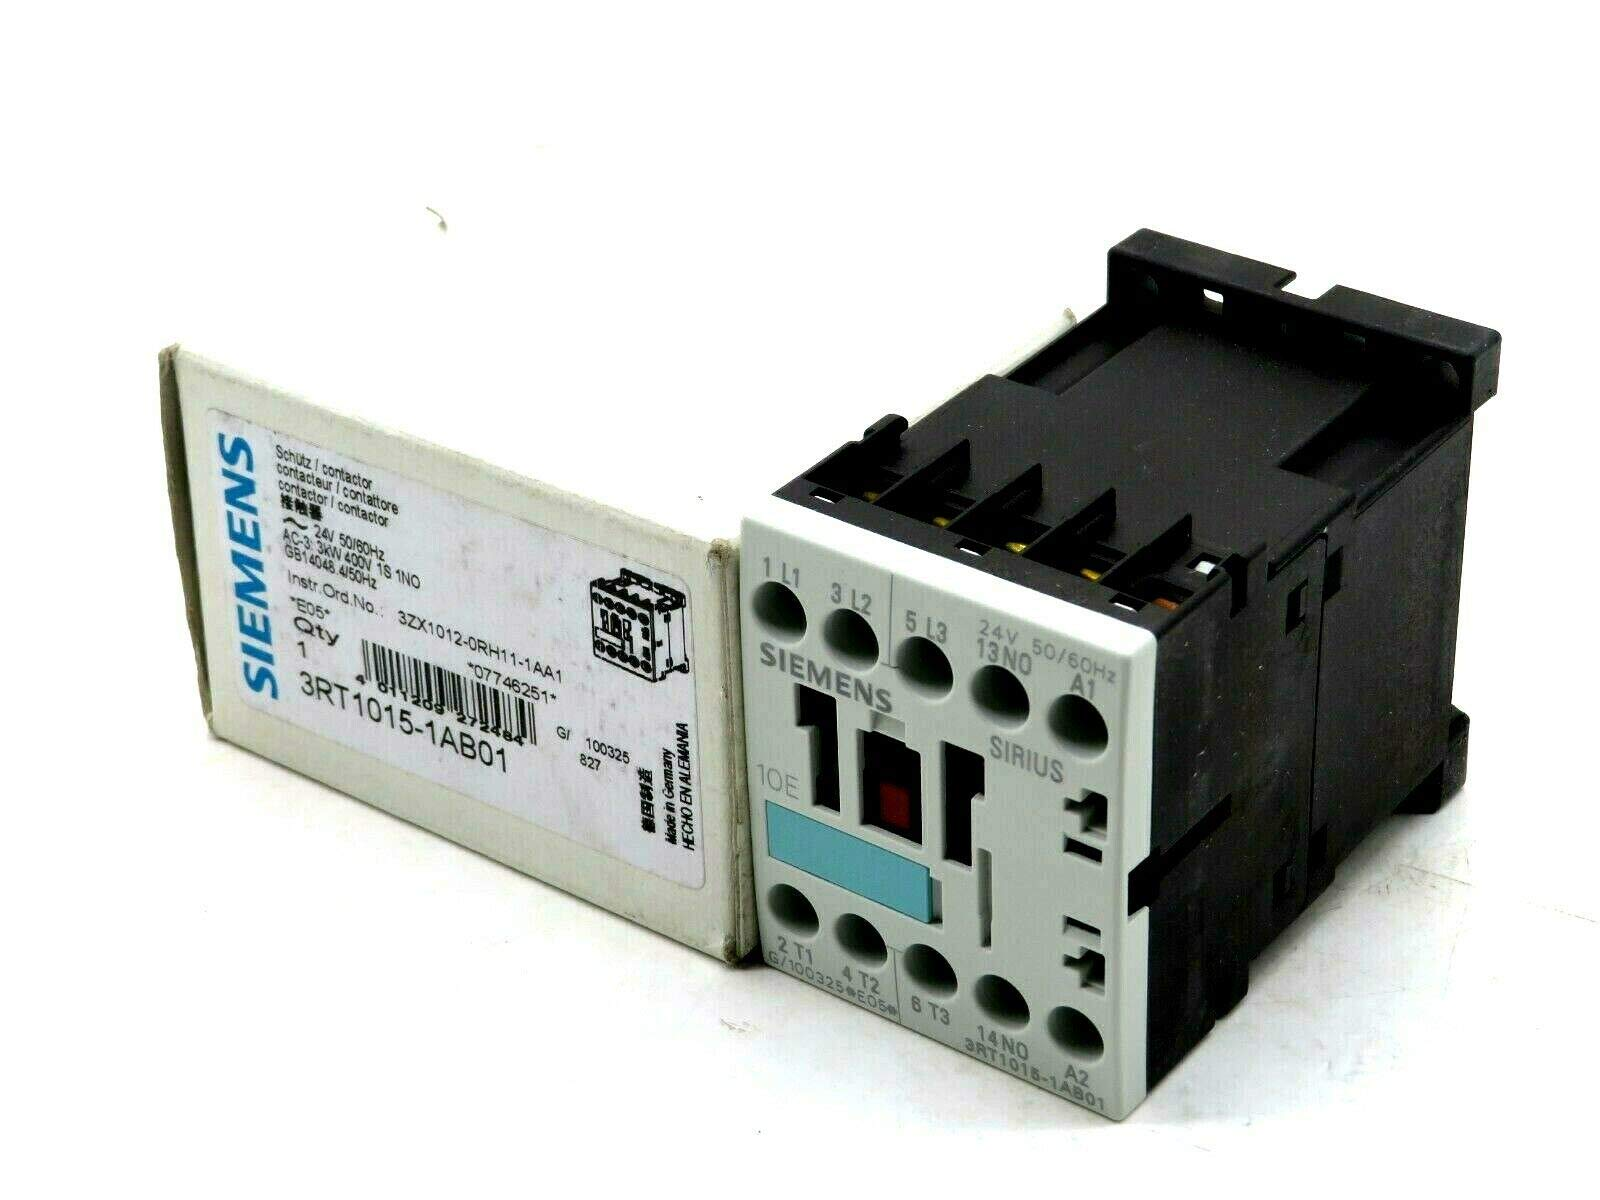 Manual//Auto Reset 3 Pole 00 NEMA Size Standard Auxiliary Contacts Siemens 14BP32AA81 Heavy Duty Motor Starter Ambient Compensated Bimetal Overload 9A Contactor Amp Rating Open Type 110-120//220-240 at 60Hz Coil Voltage 3 Phase